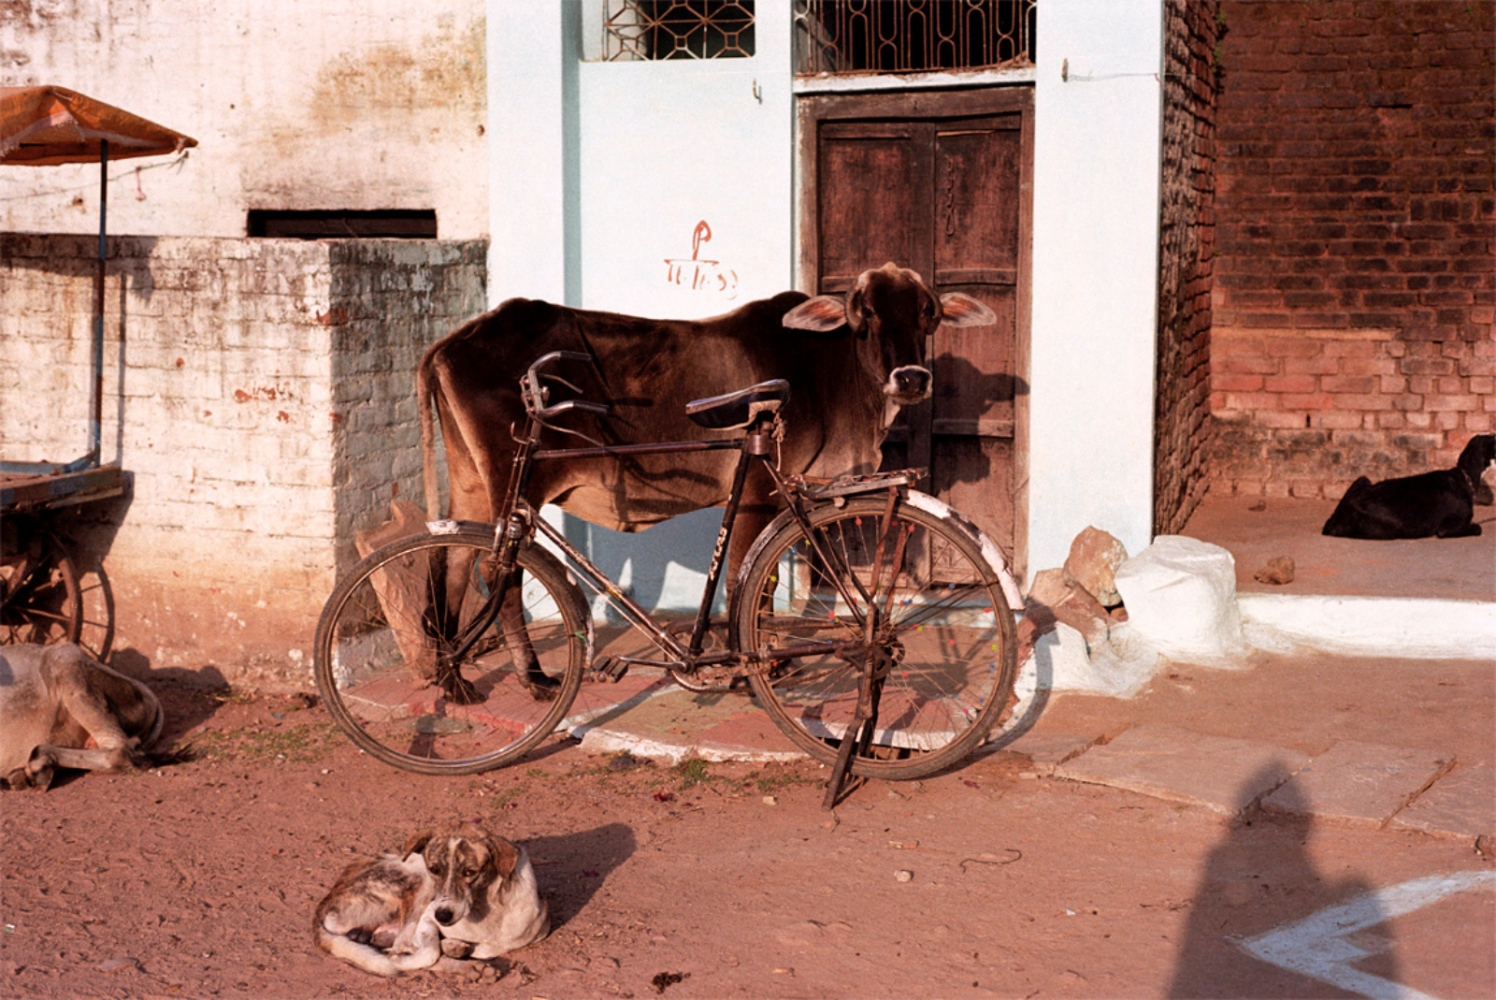 Cow and Bicycle, Khajuraho, India, November 2003